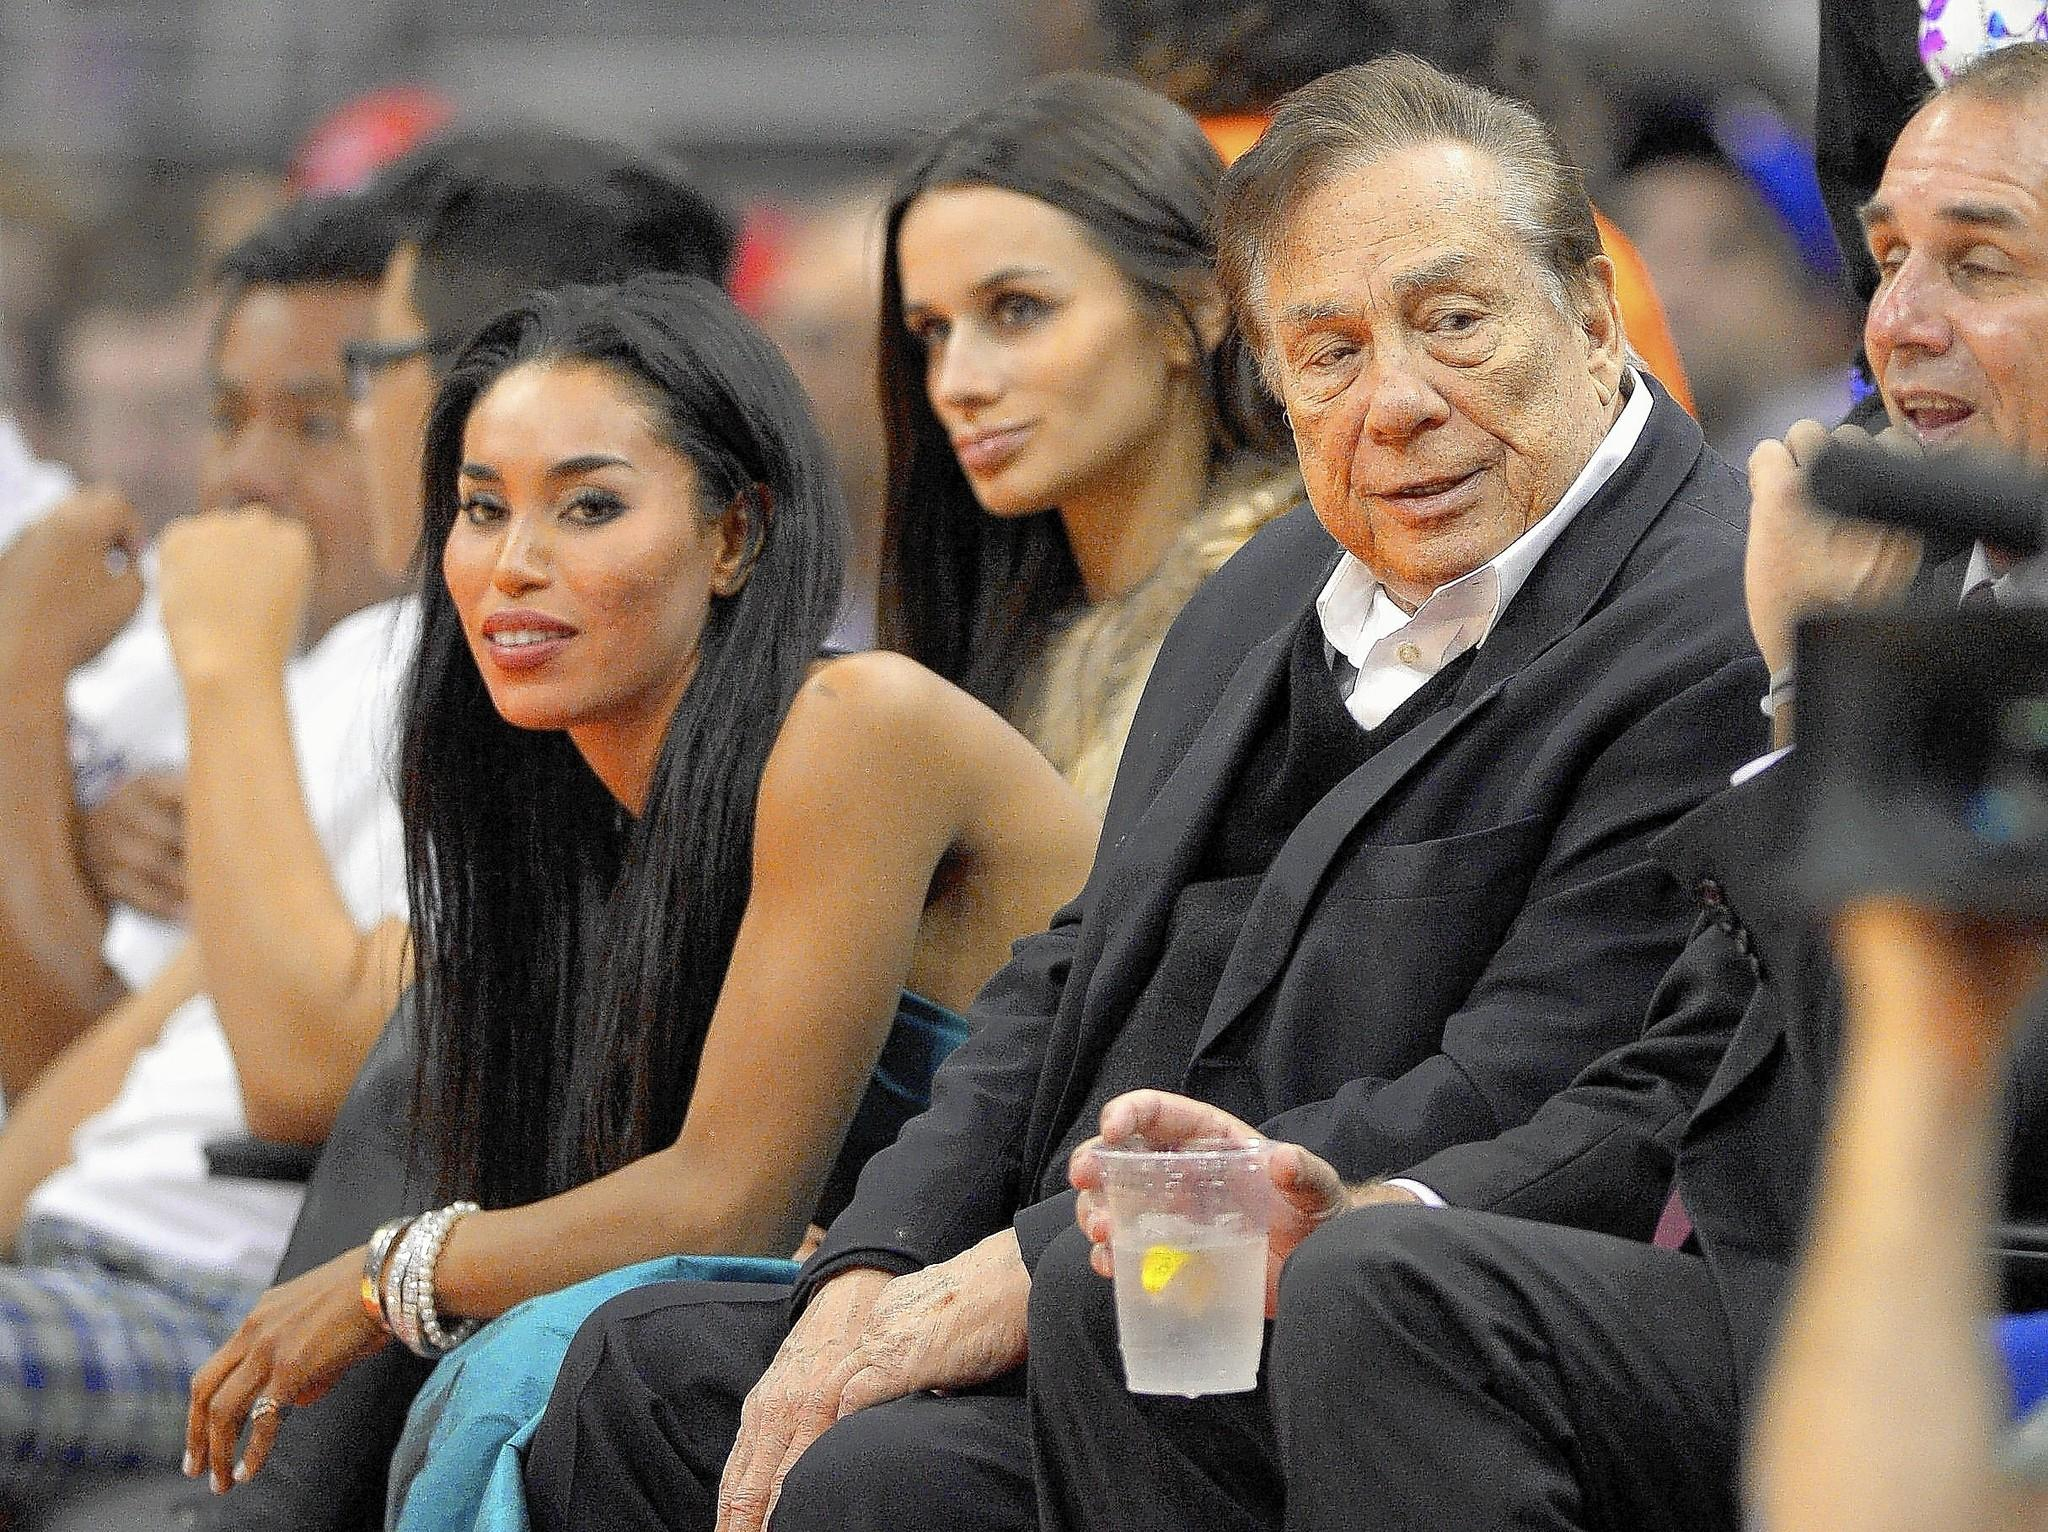 V. Stiviano, left, watches the Clippers with owner Donald Sterling in October. Stiviano is being sued by Sterling's wife, who alleges the 31-year-old was in a romantic relationship with her husband, 80.